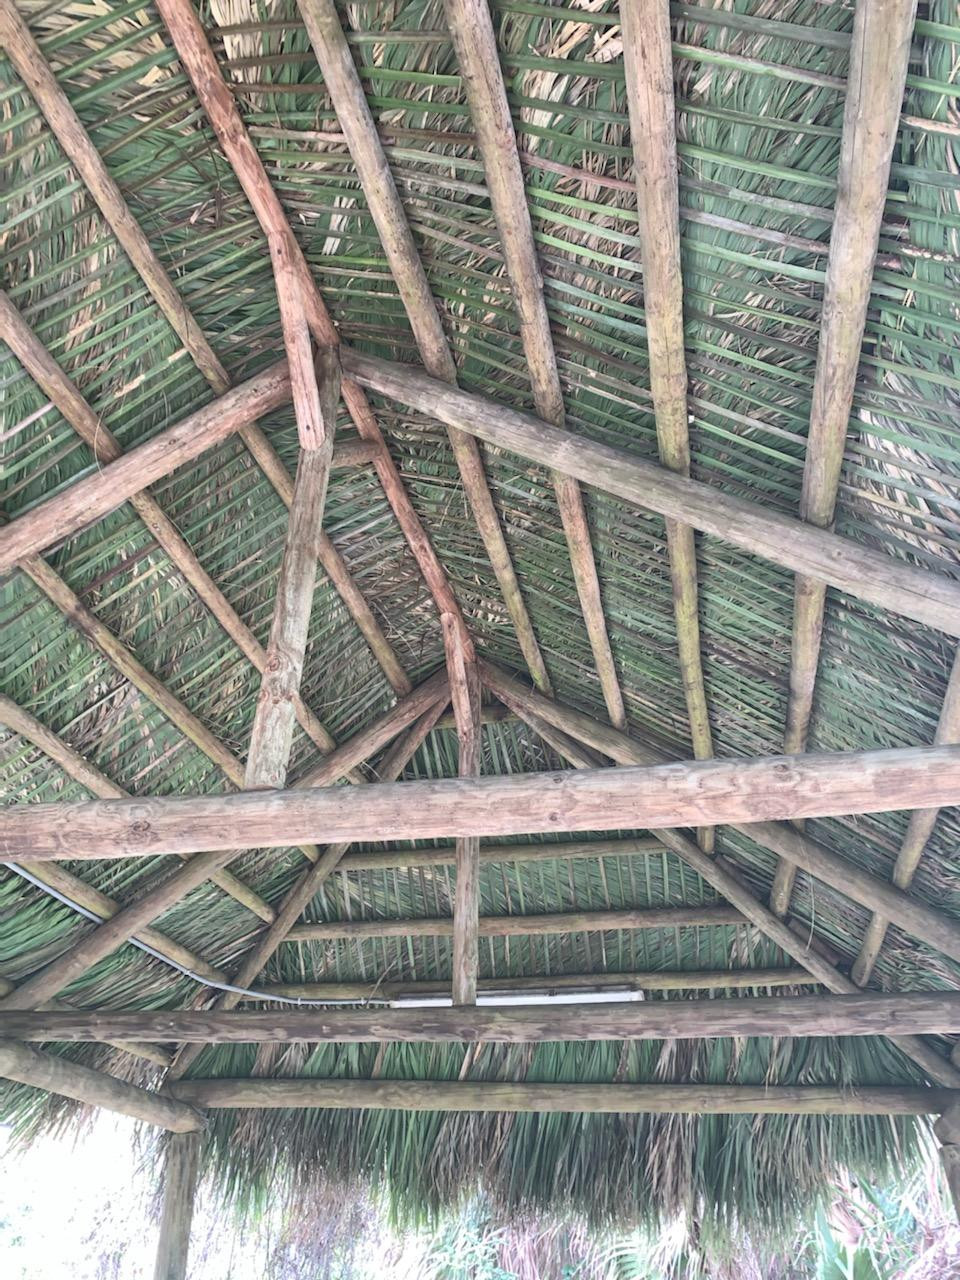 Image shows the Inside of the new Chickee Hut roof looking up